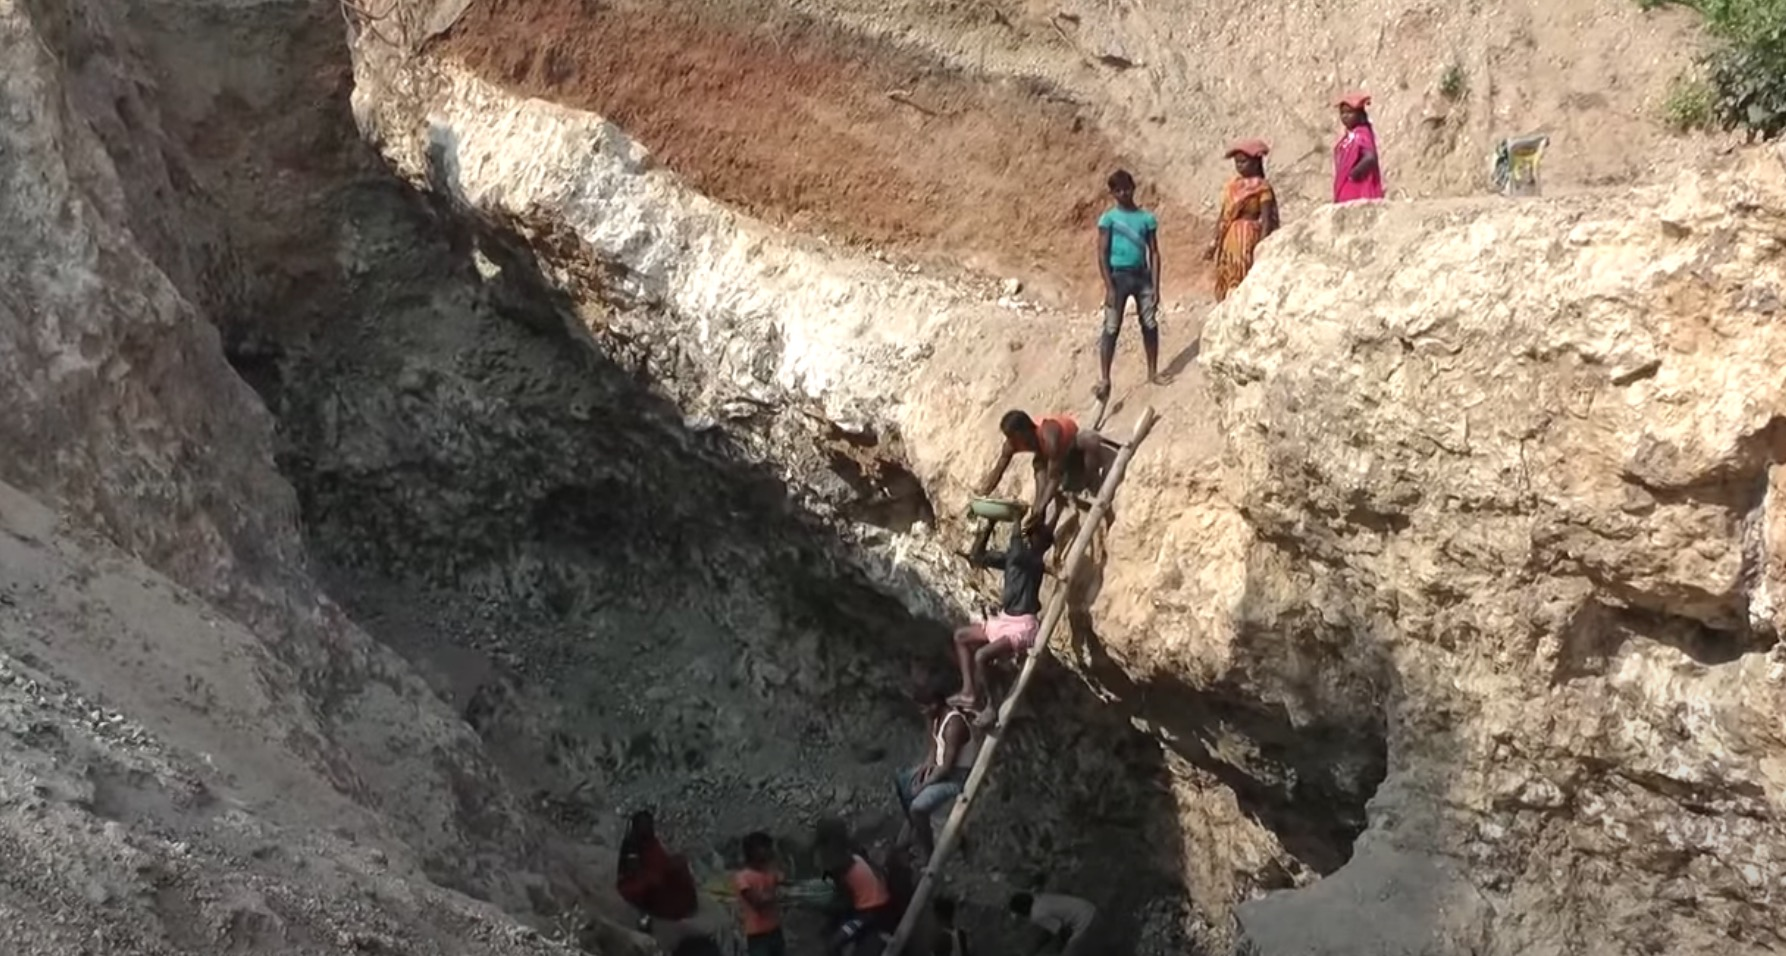 Children working in a mine in Jharkhand, India